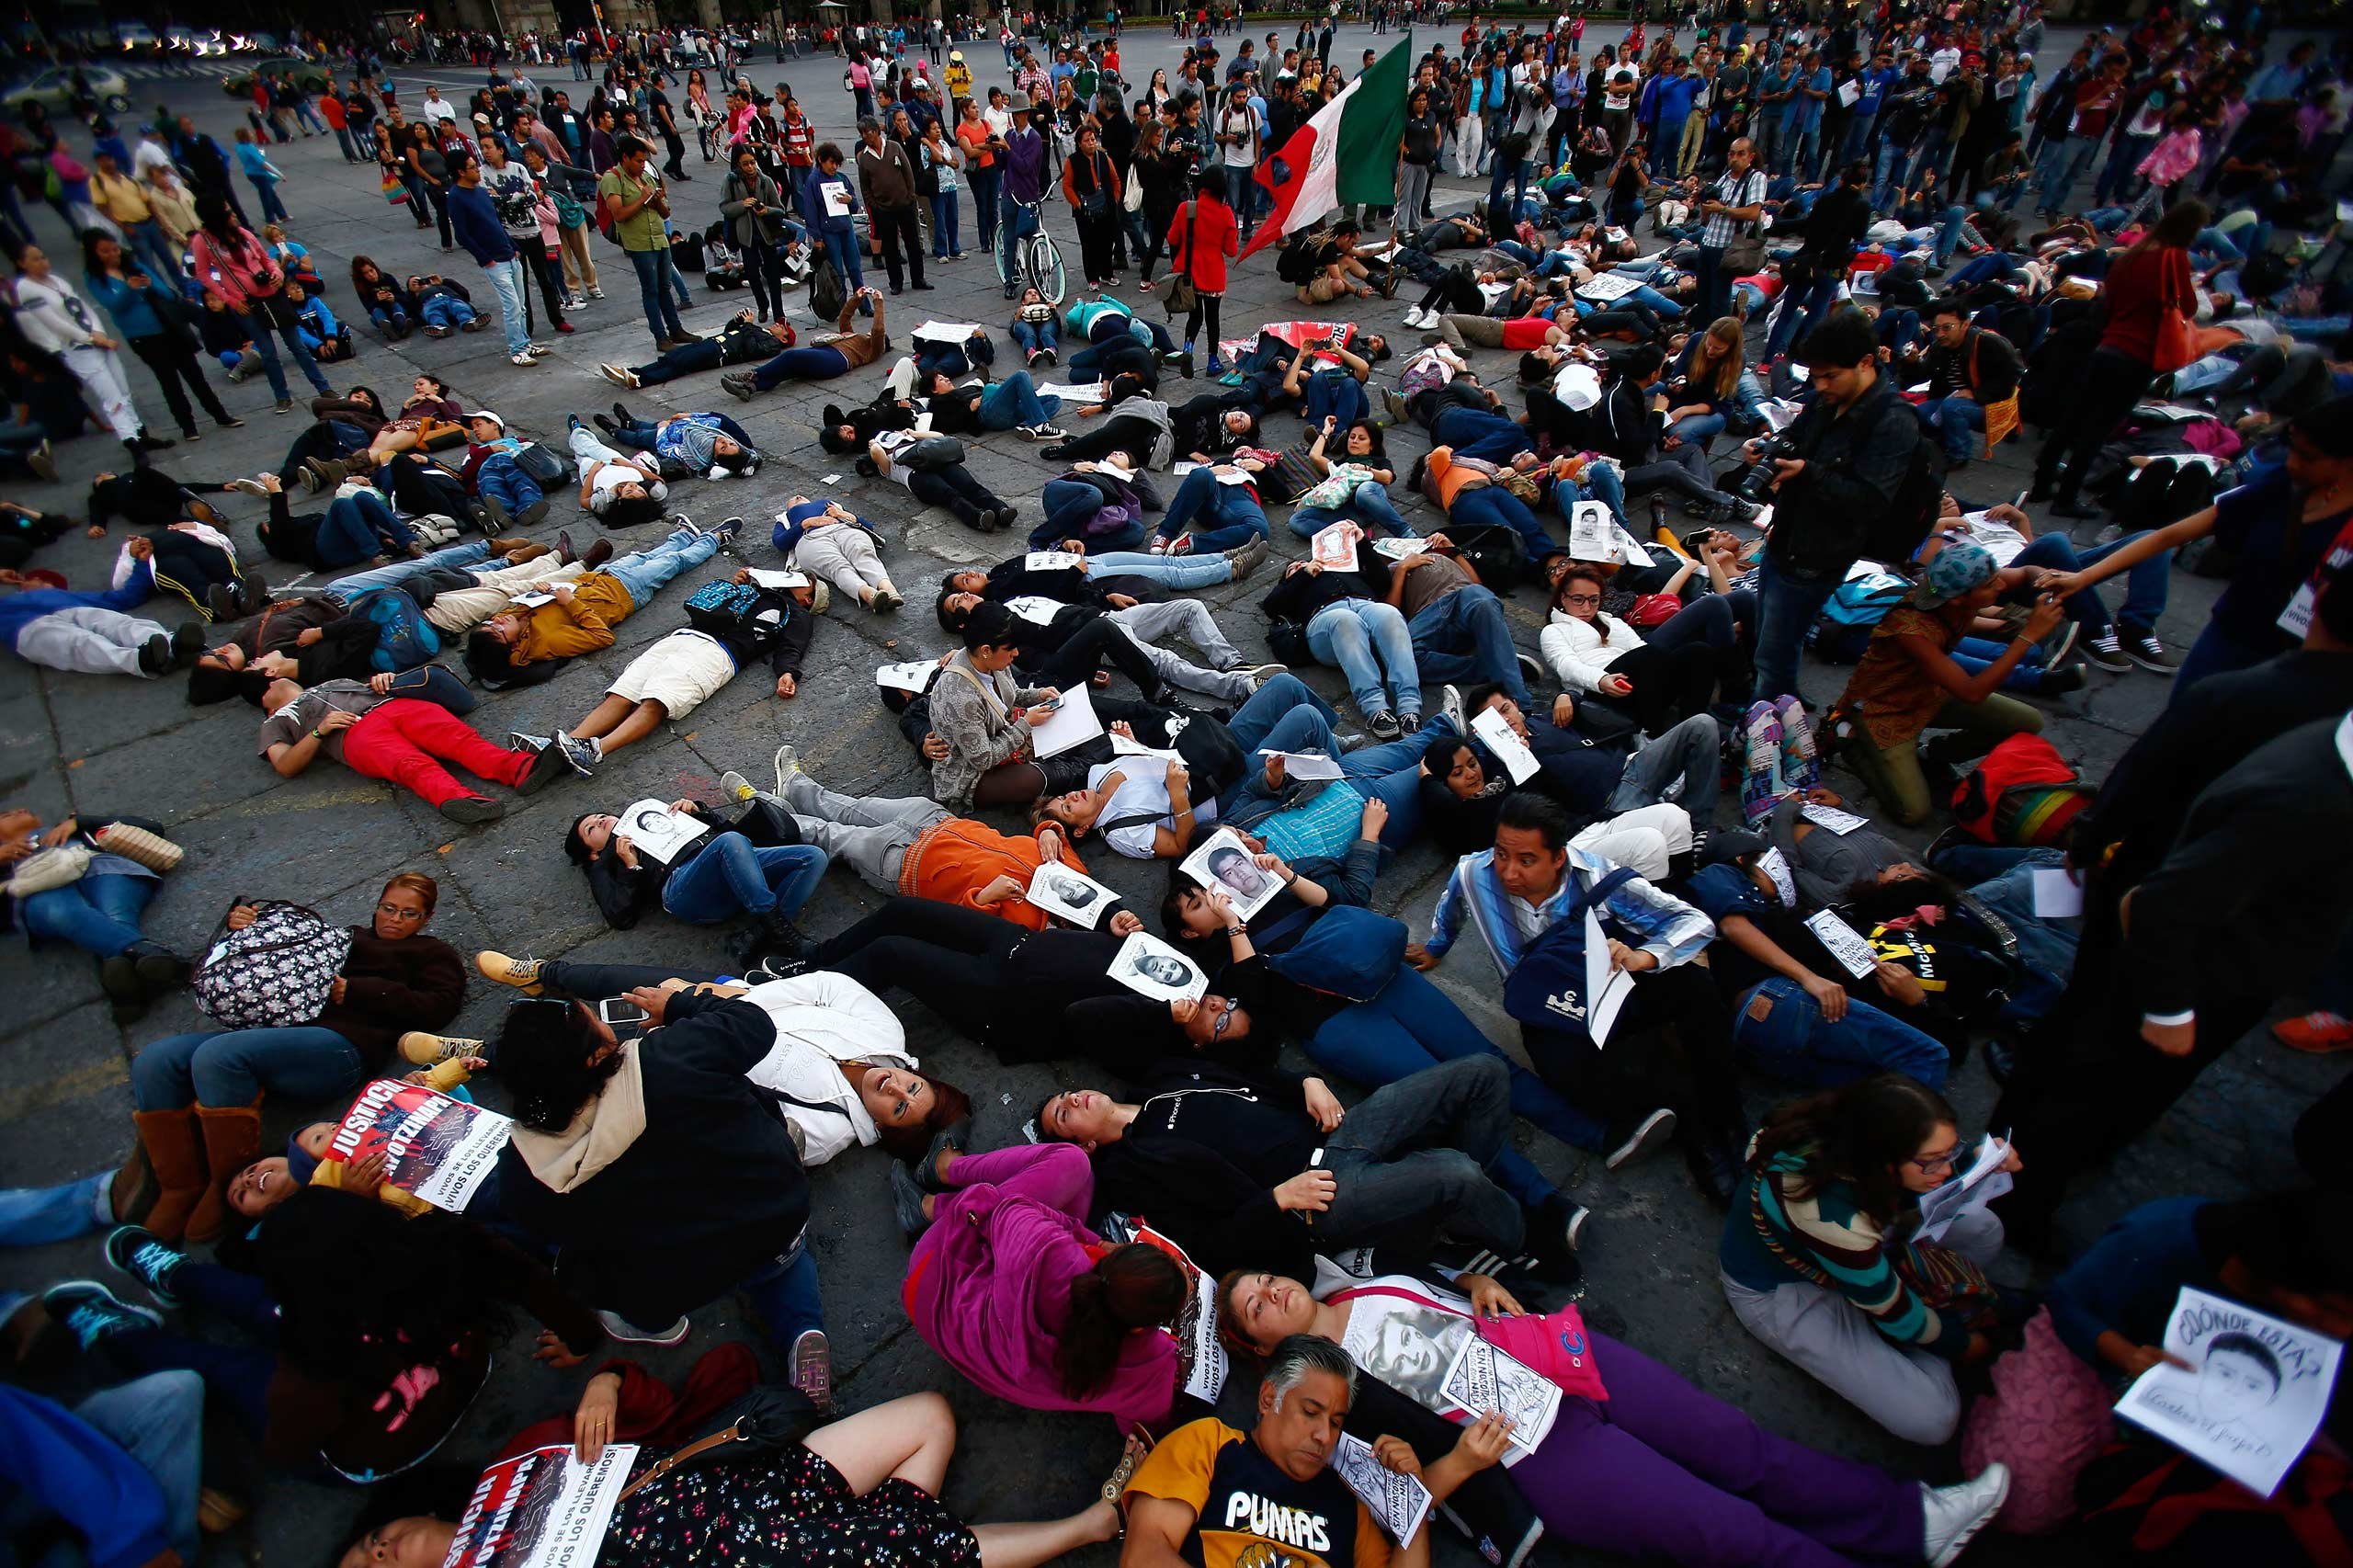 Demonstrators lie on the floor during a protest at Zocalo square in Mexico City November 8, 2014.